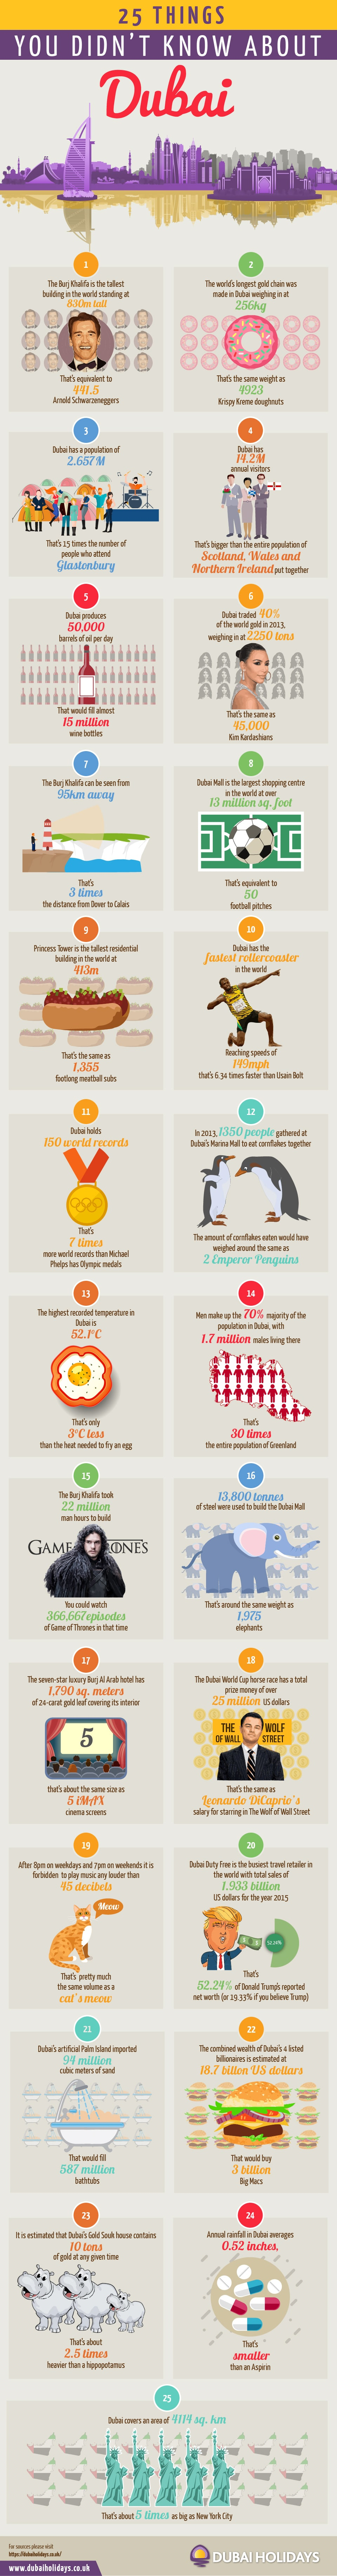 25 Things You Probably Didn't Know About Dubai [Infographic]